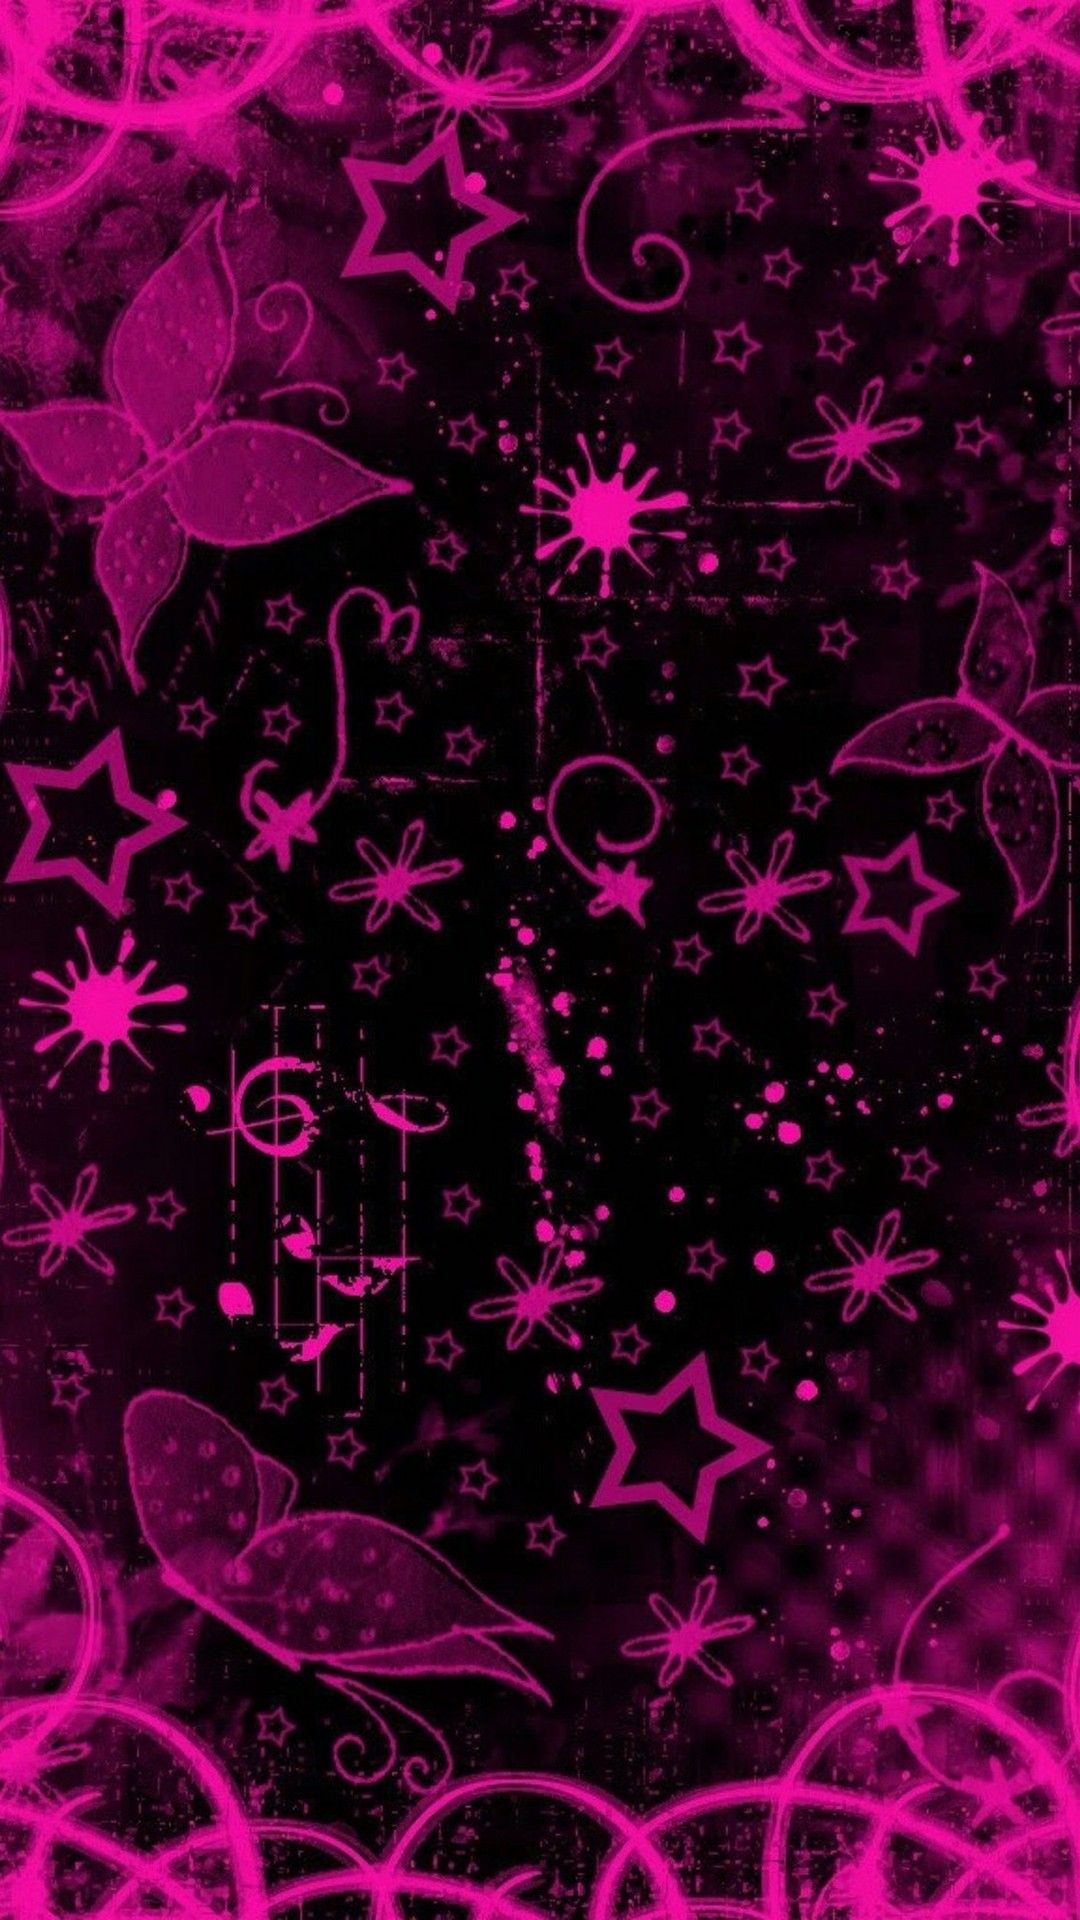 Best Black and Pink iPhone Wallpaper | iPhoneWallpapers | Iphone wallpaper, Black wallpaper ...